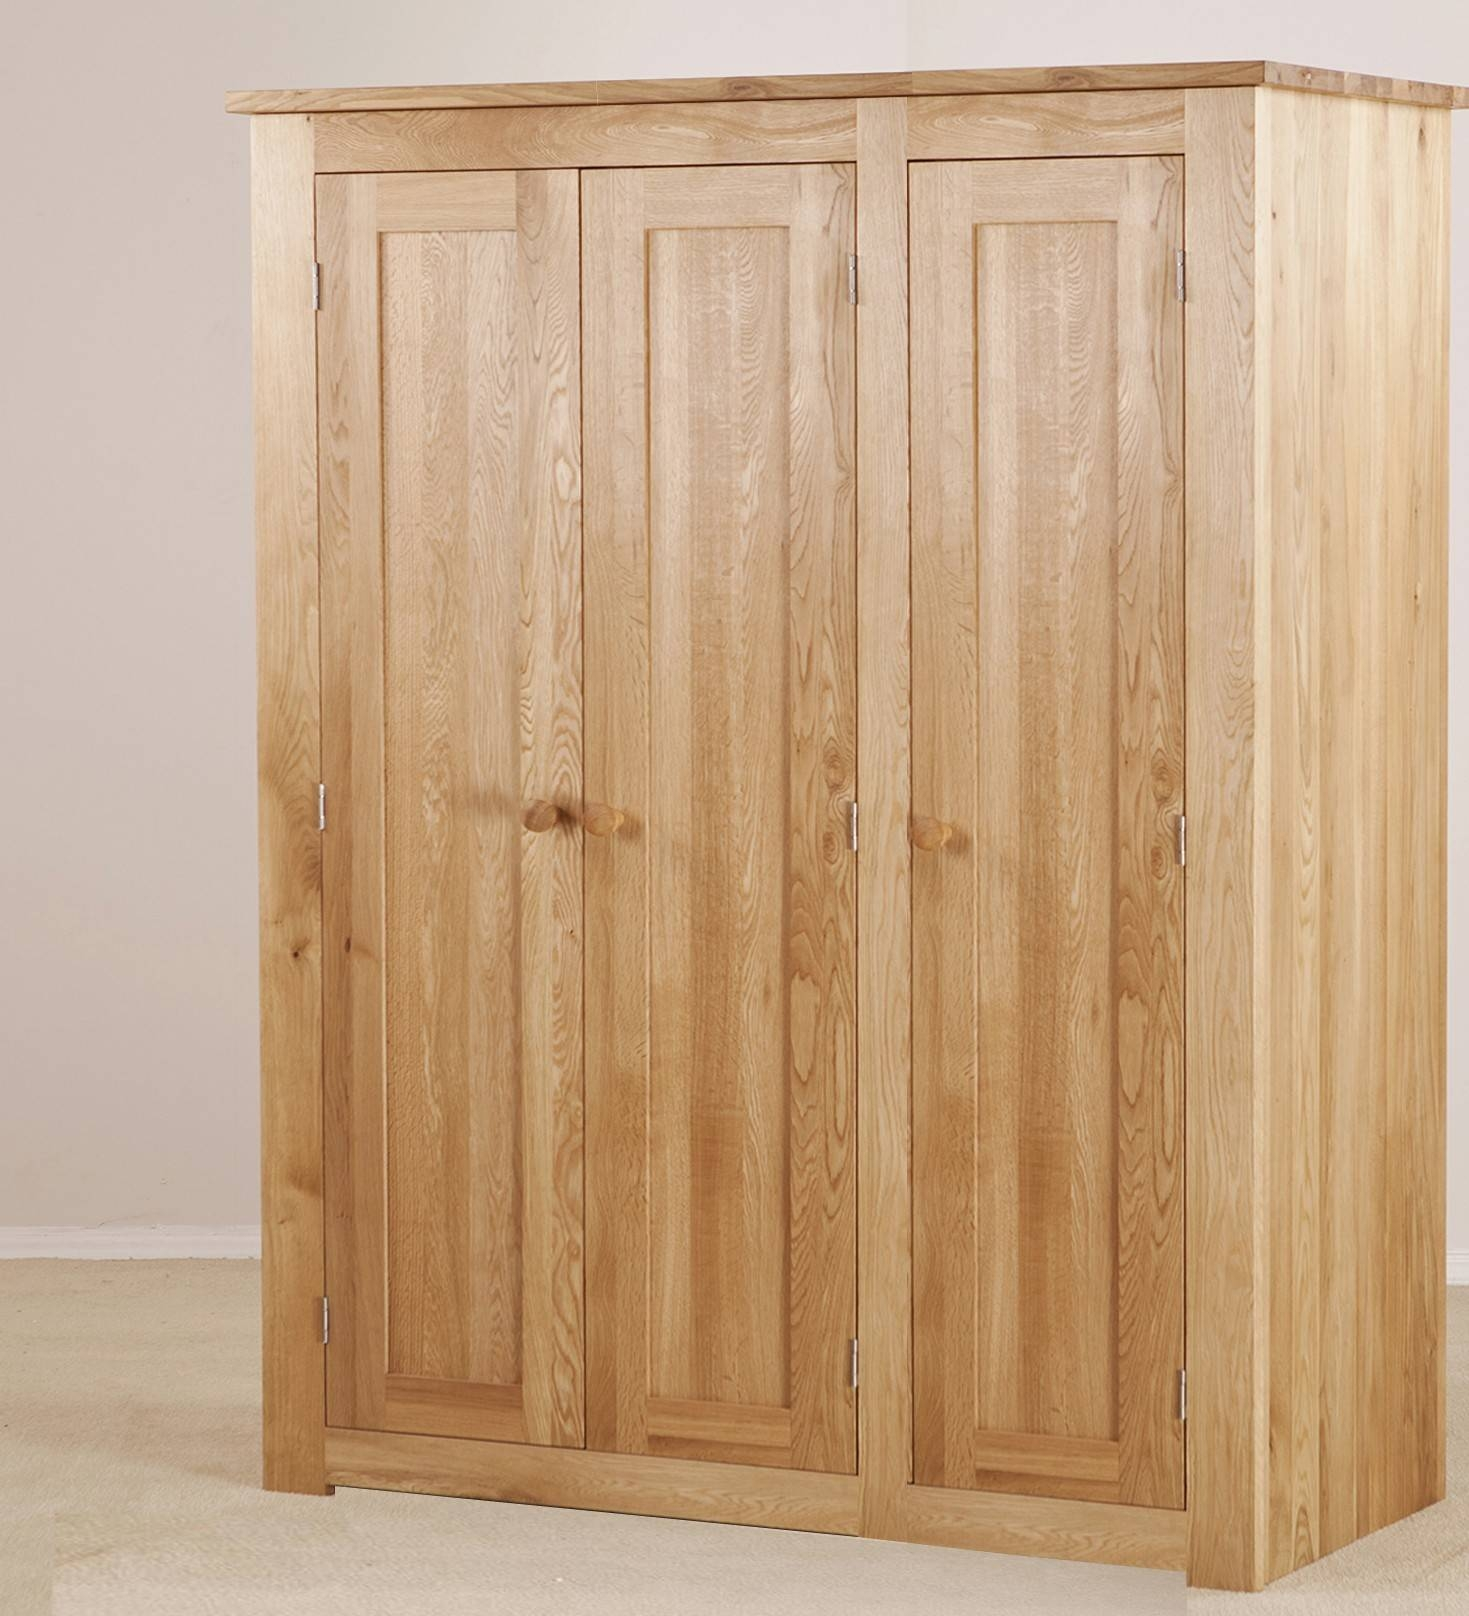 Torino Solid Oak Large 3 Door Wardrobe | Furniture4Yourhome pertaining to Solid Wood Fitted Wardrobes (Image 24 of 30)